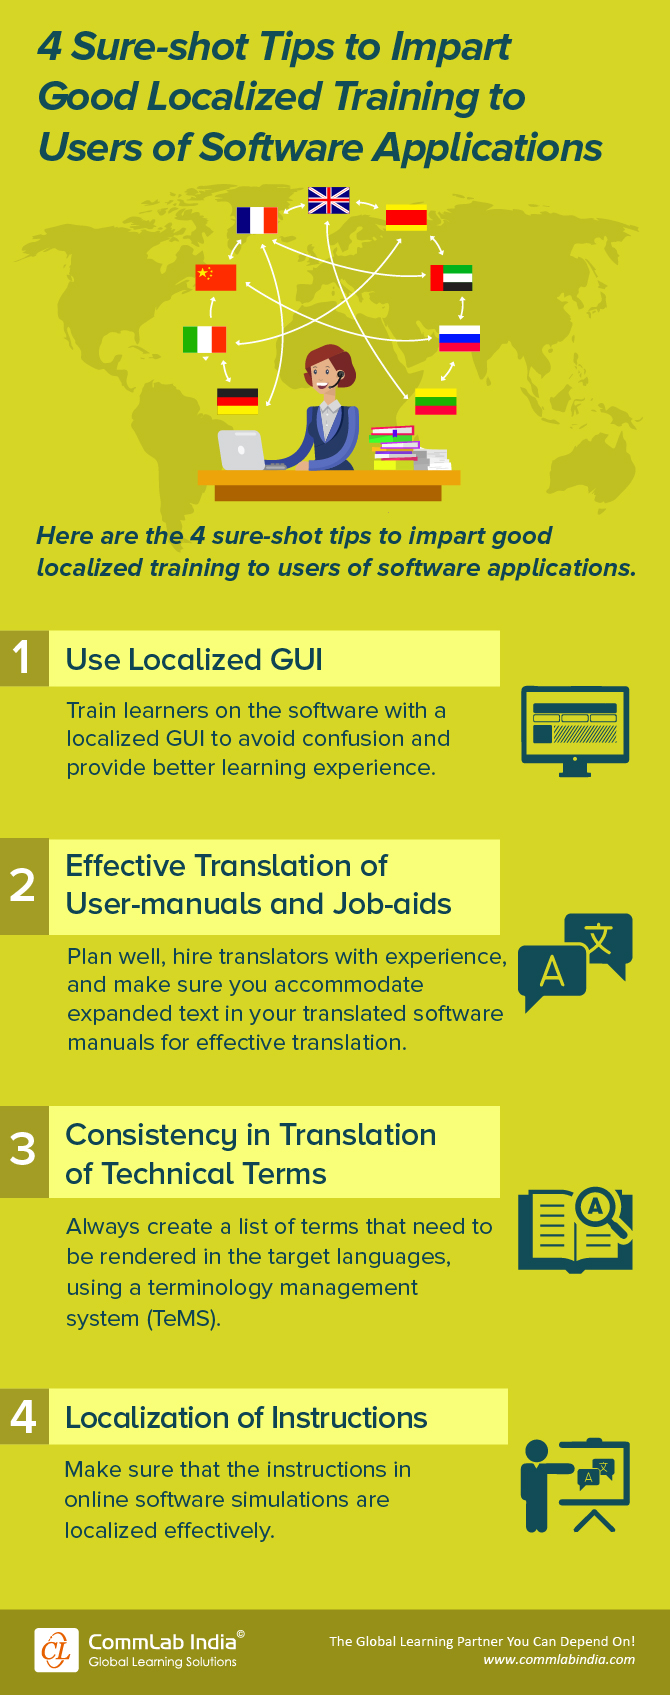 4 Sure-shot Tips to Impart Good Localized Training to Users of Software Applications [Infographic]